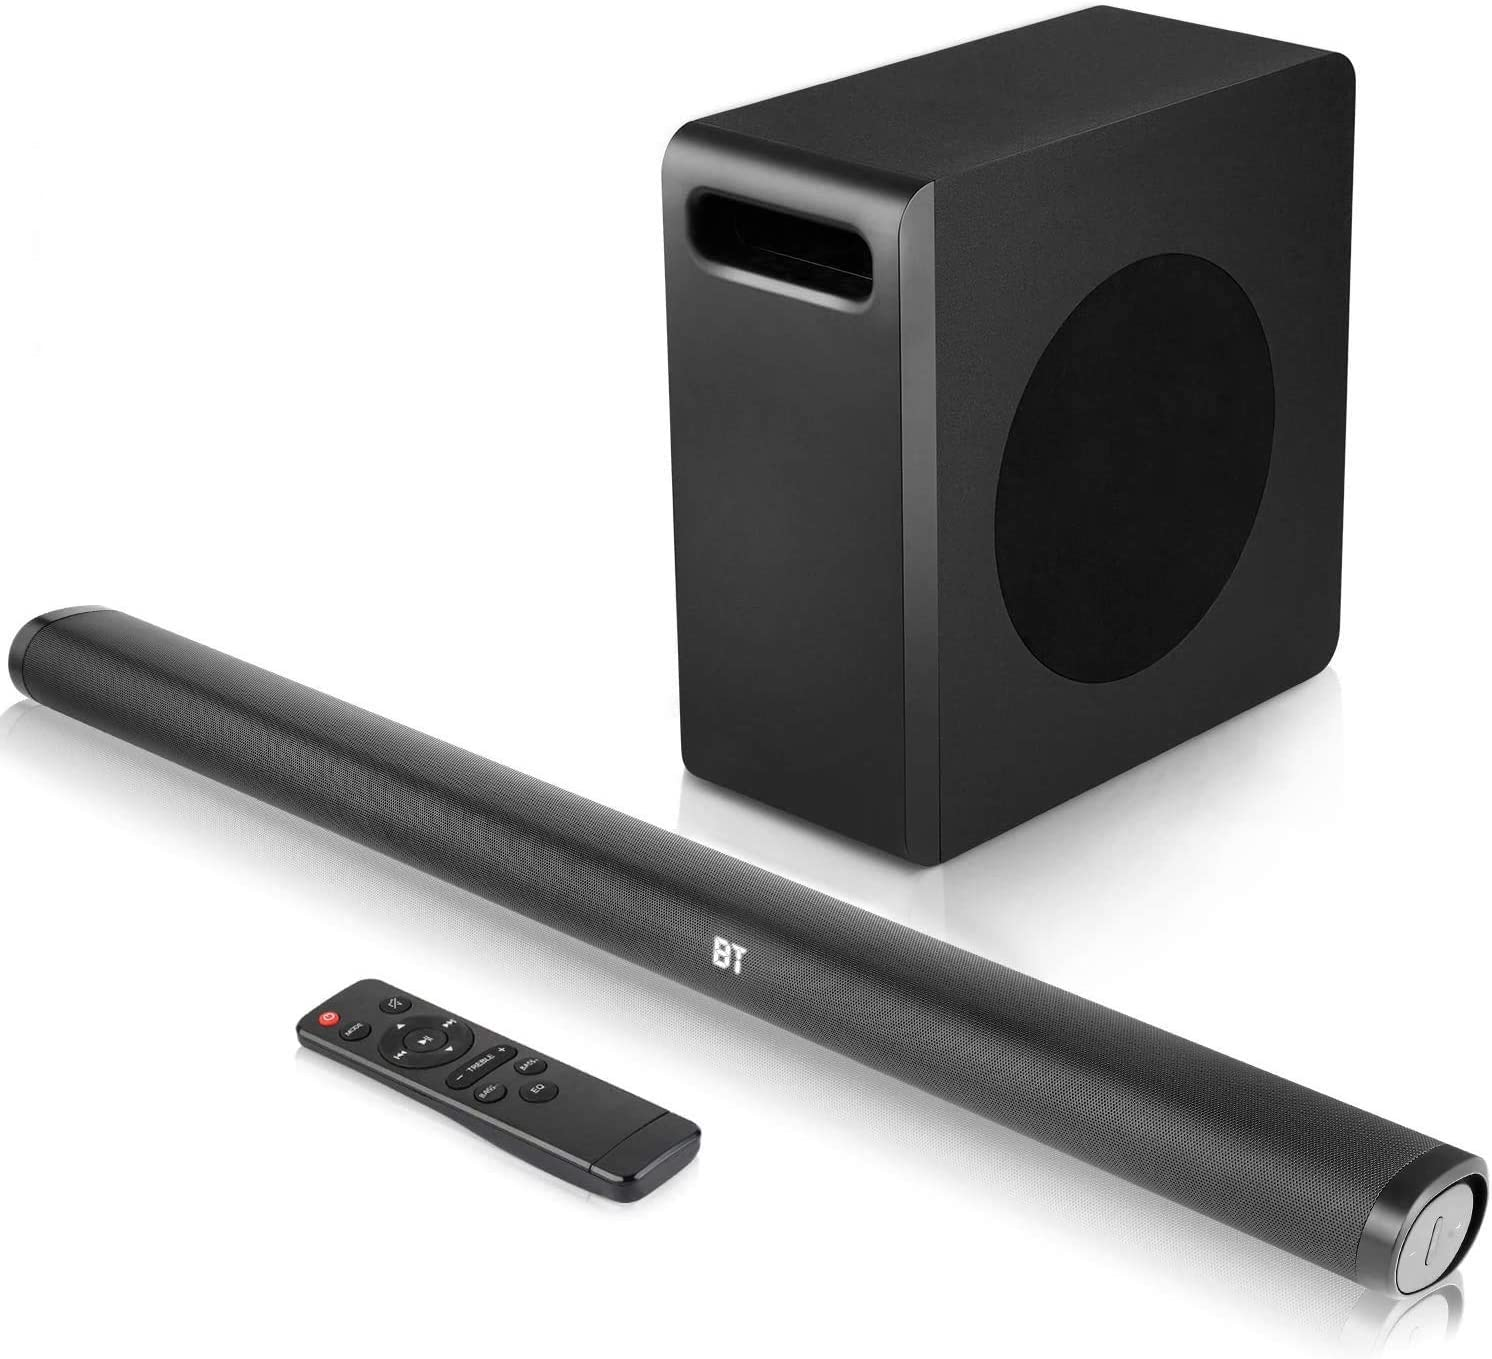 Sound Bar with Subwoofer, 140w TV 2.1 CH Soundbar, Superior Surround Sound System, Works with 4K & HD & Smart TV,Bluetooth 5.0 Enabled